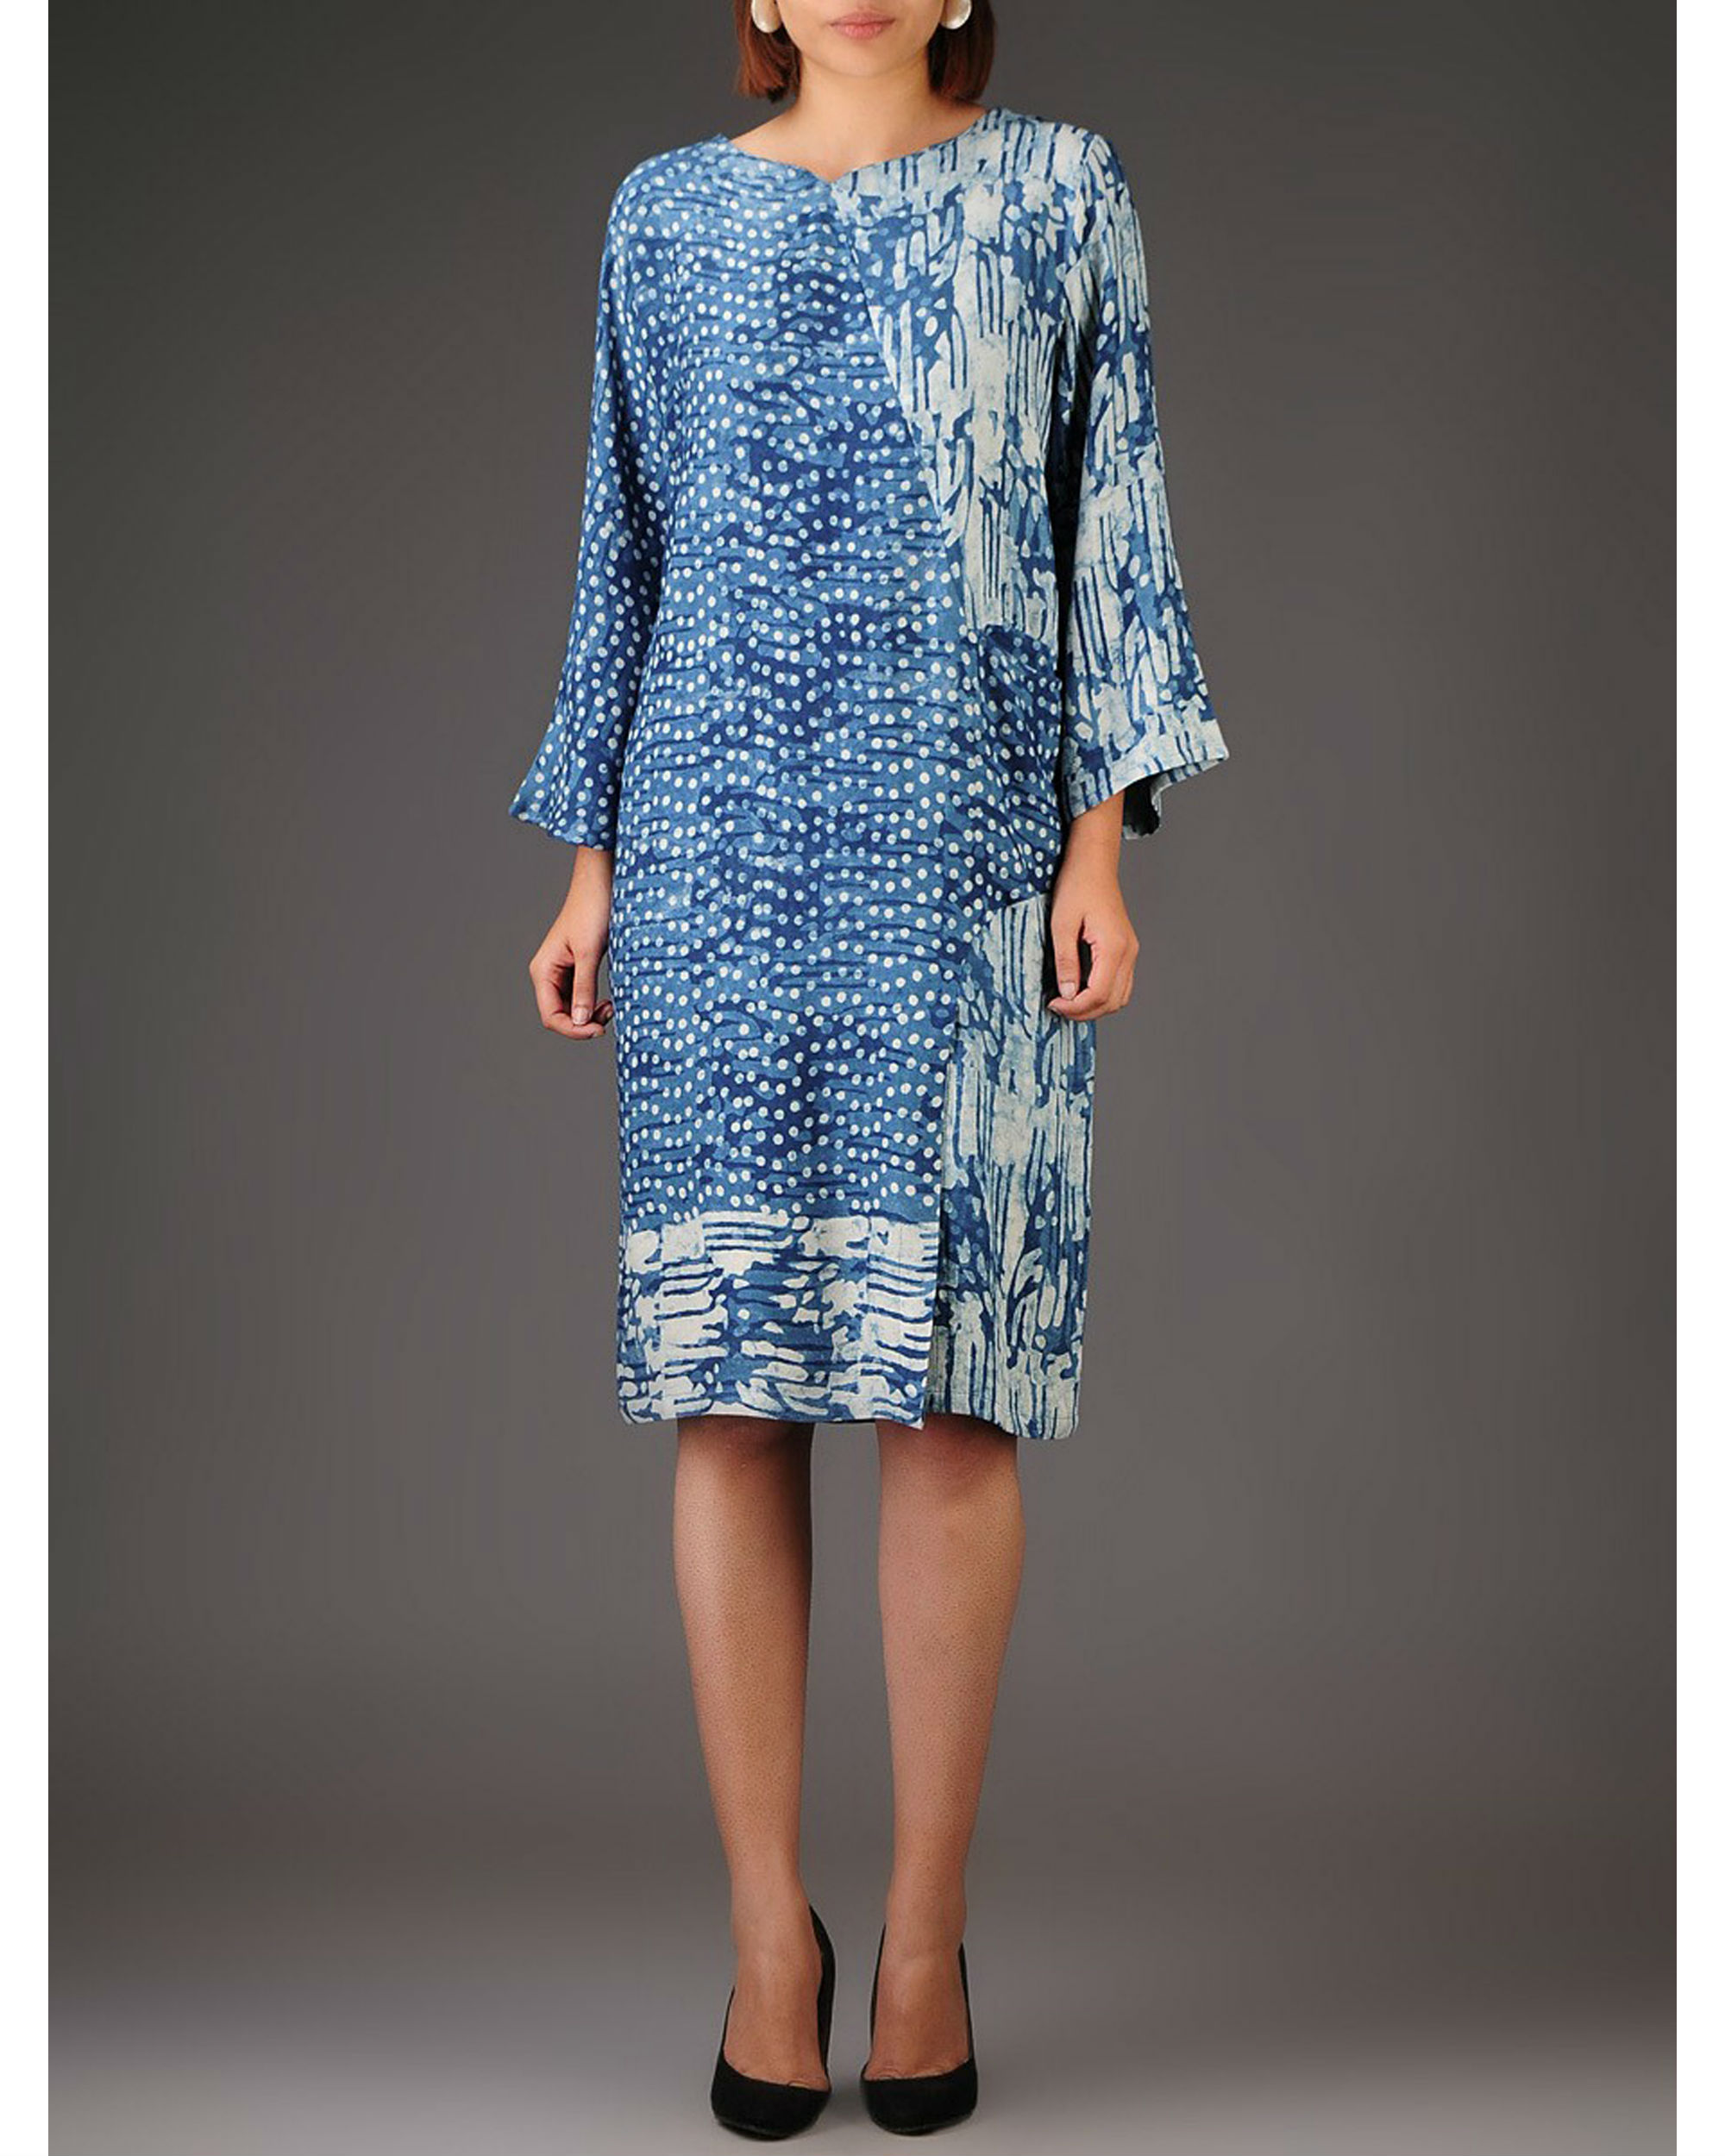 Indigo panelled dress